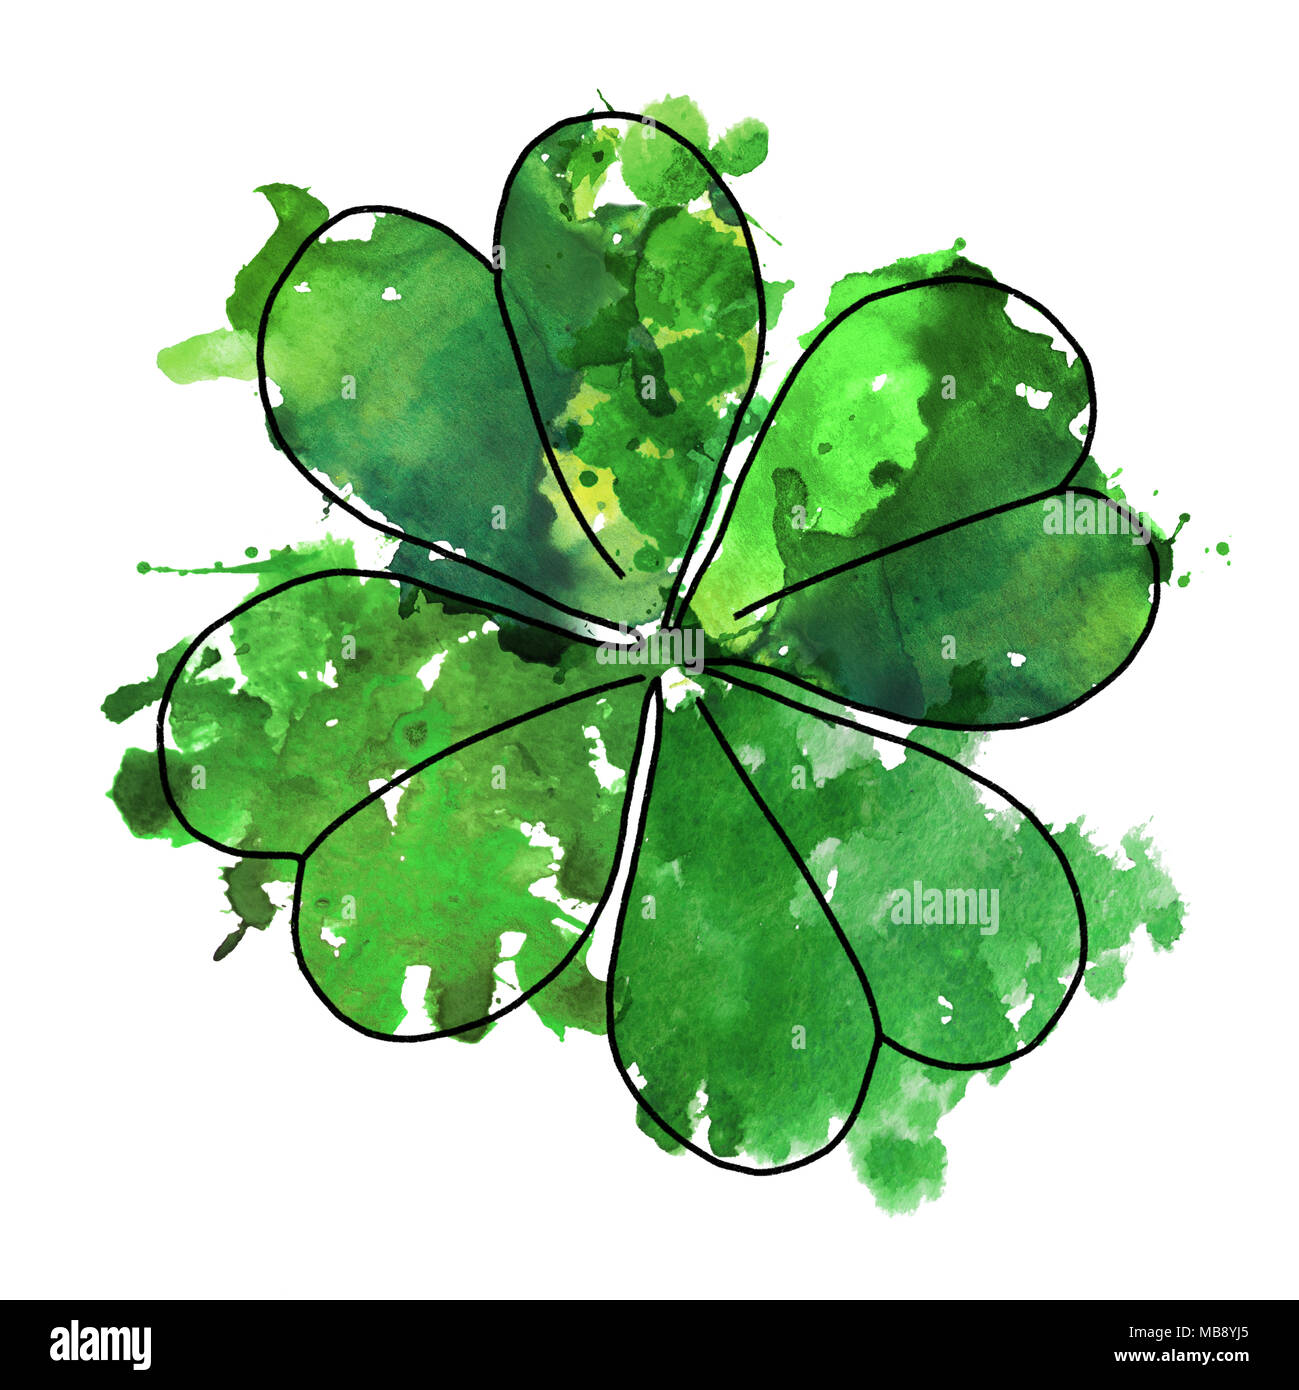 2d hand drawn illustration for St.Patrick's day. Green watercolor splash blot in shape of clover leaf. Isolated on white background. Stock Photo